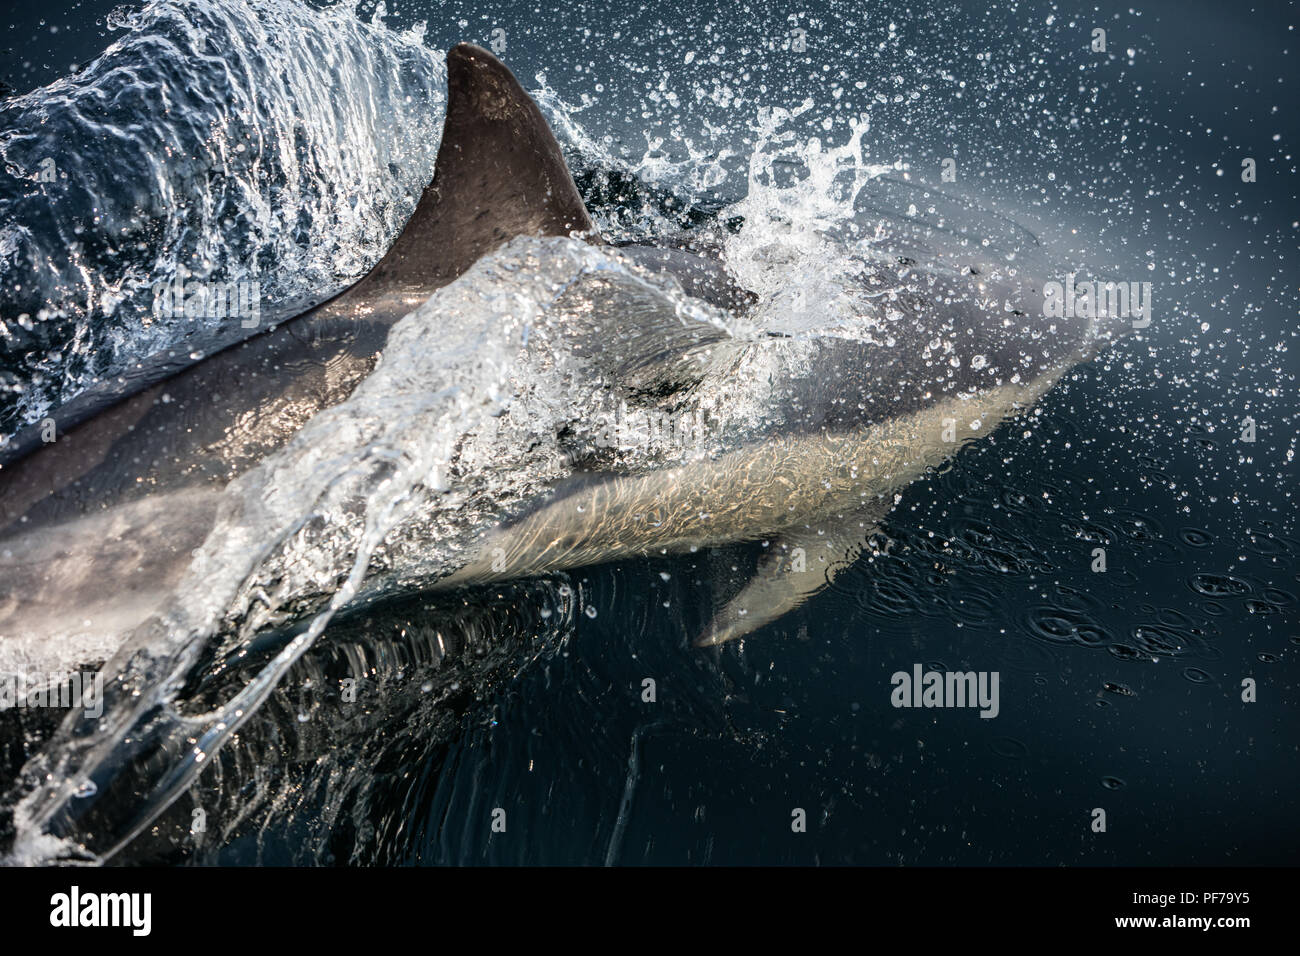 A quick and agile Short-Beaked Common dolphin, Delphinus delphis, swims in the north Atlantic Ocean off Cape Cod, Massachusetts. - Stock Image